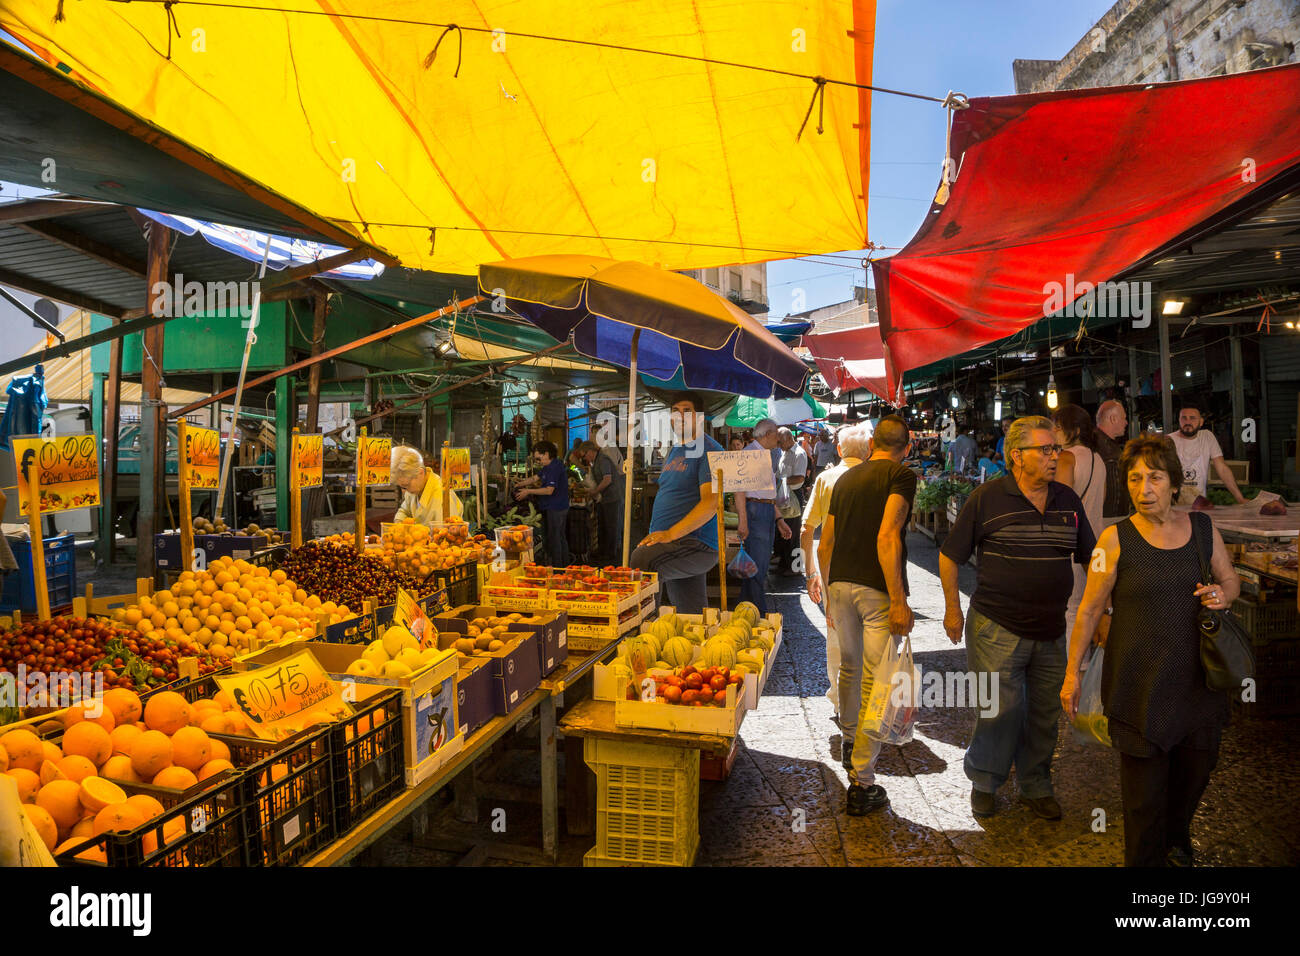 Colourful awnings in The Ballaro Market in the Albergheria district of central Palermo, Sicily, Italy. - Stock Image